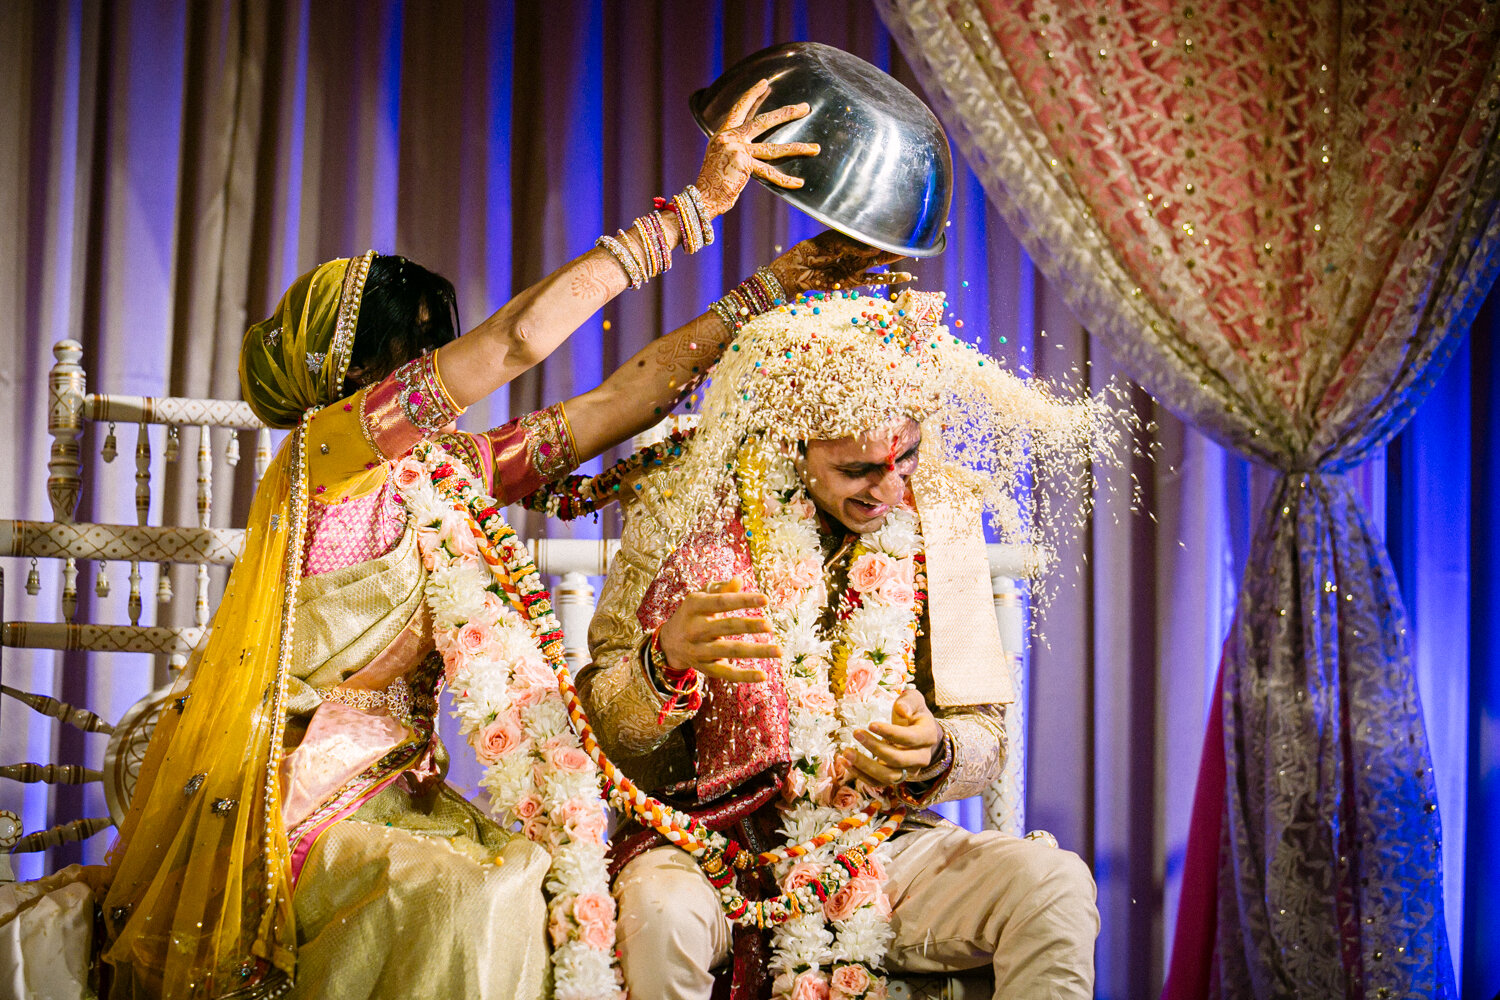 austin-texas-indian-wedding-photographer-edward-bennett-8.jpg